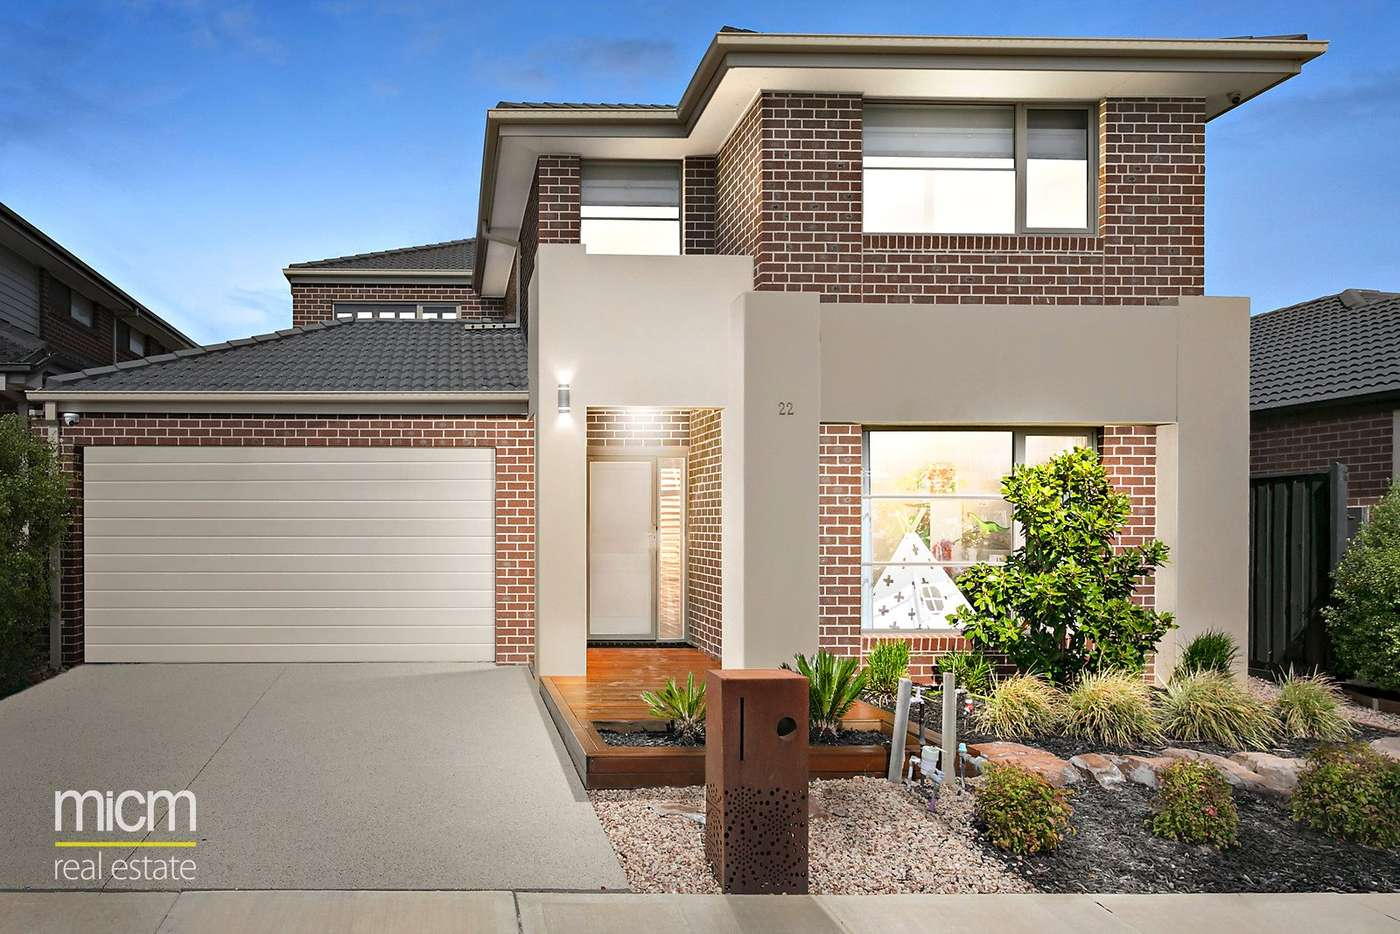 Main view of Homely house listing, 22 Hanover Street, Point Cook, VIC 3030